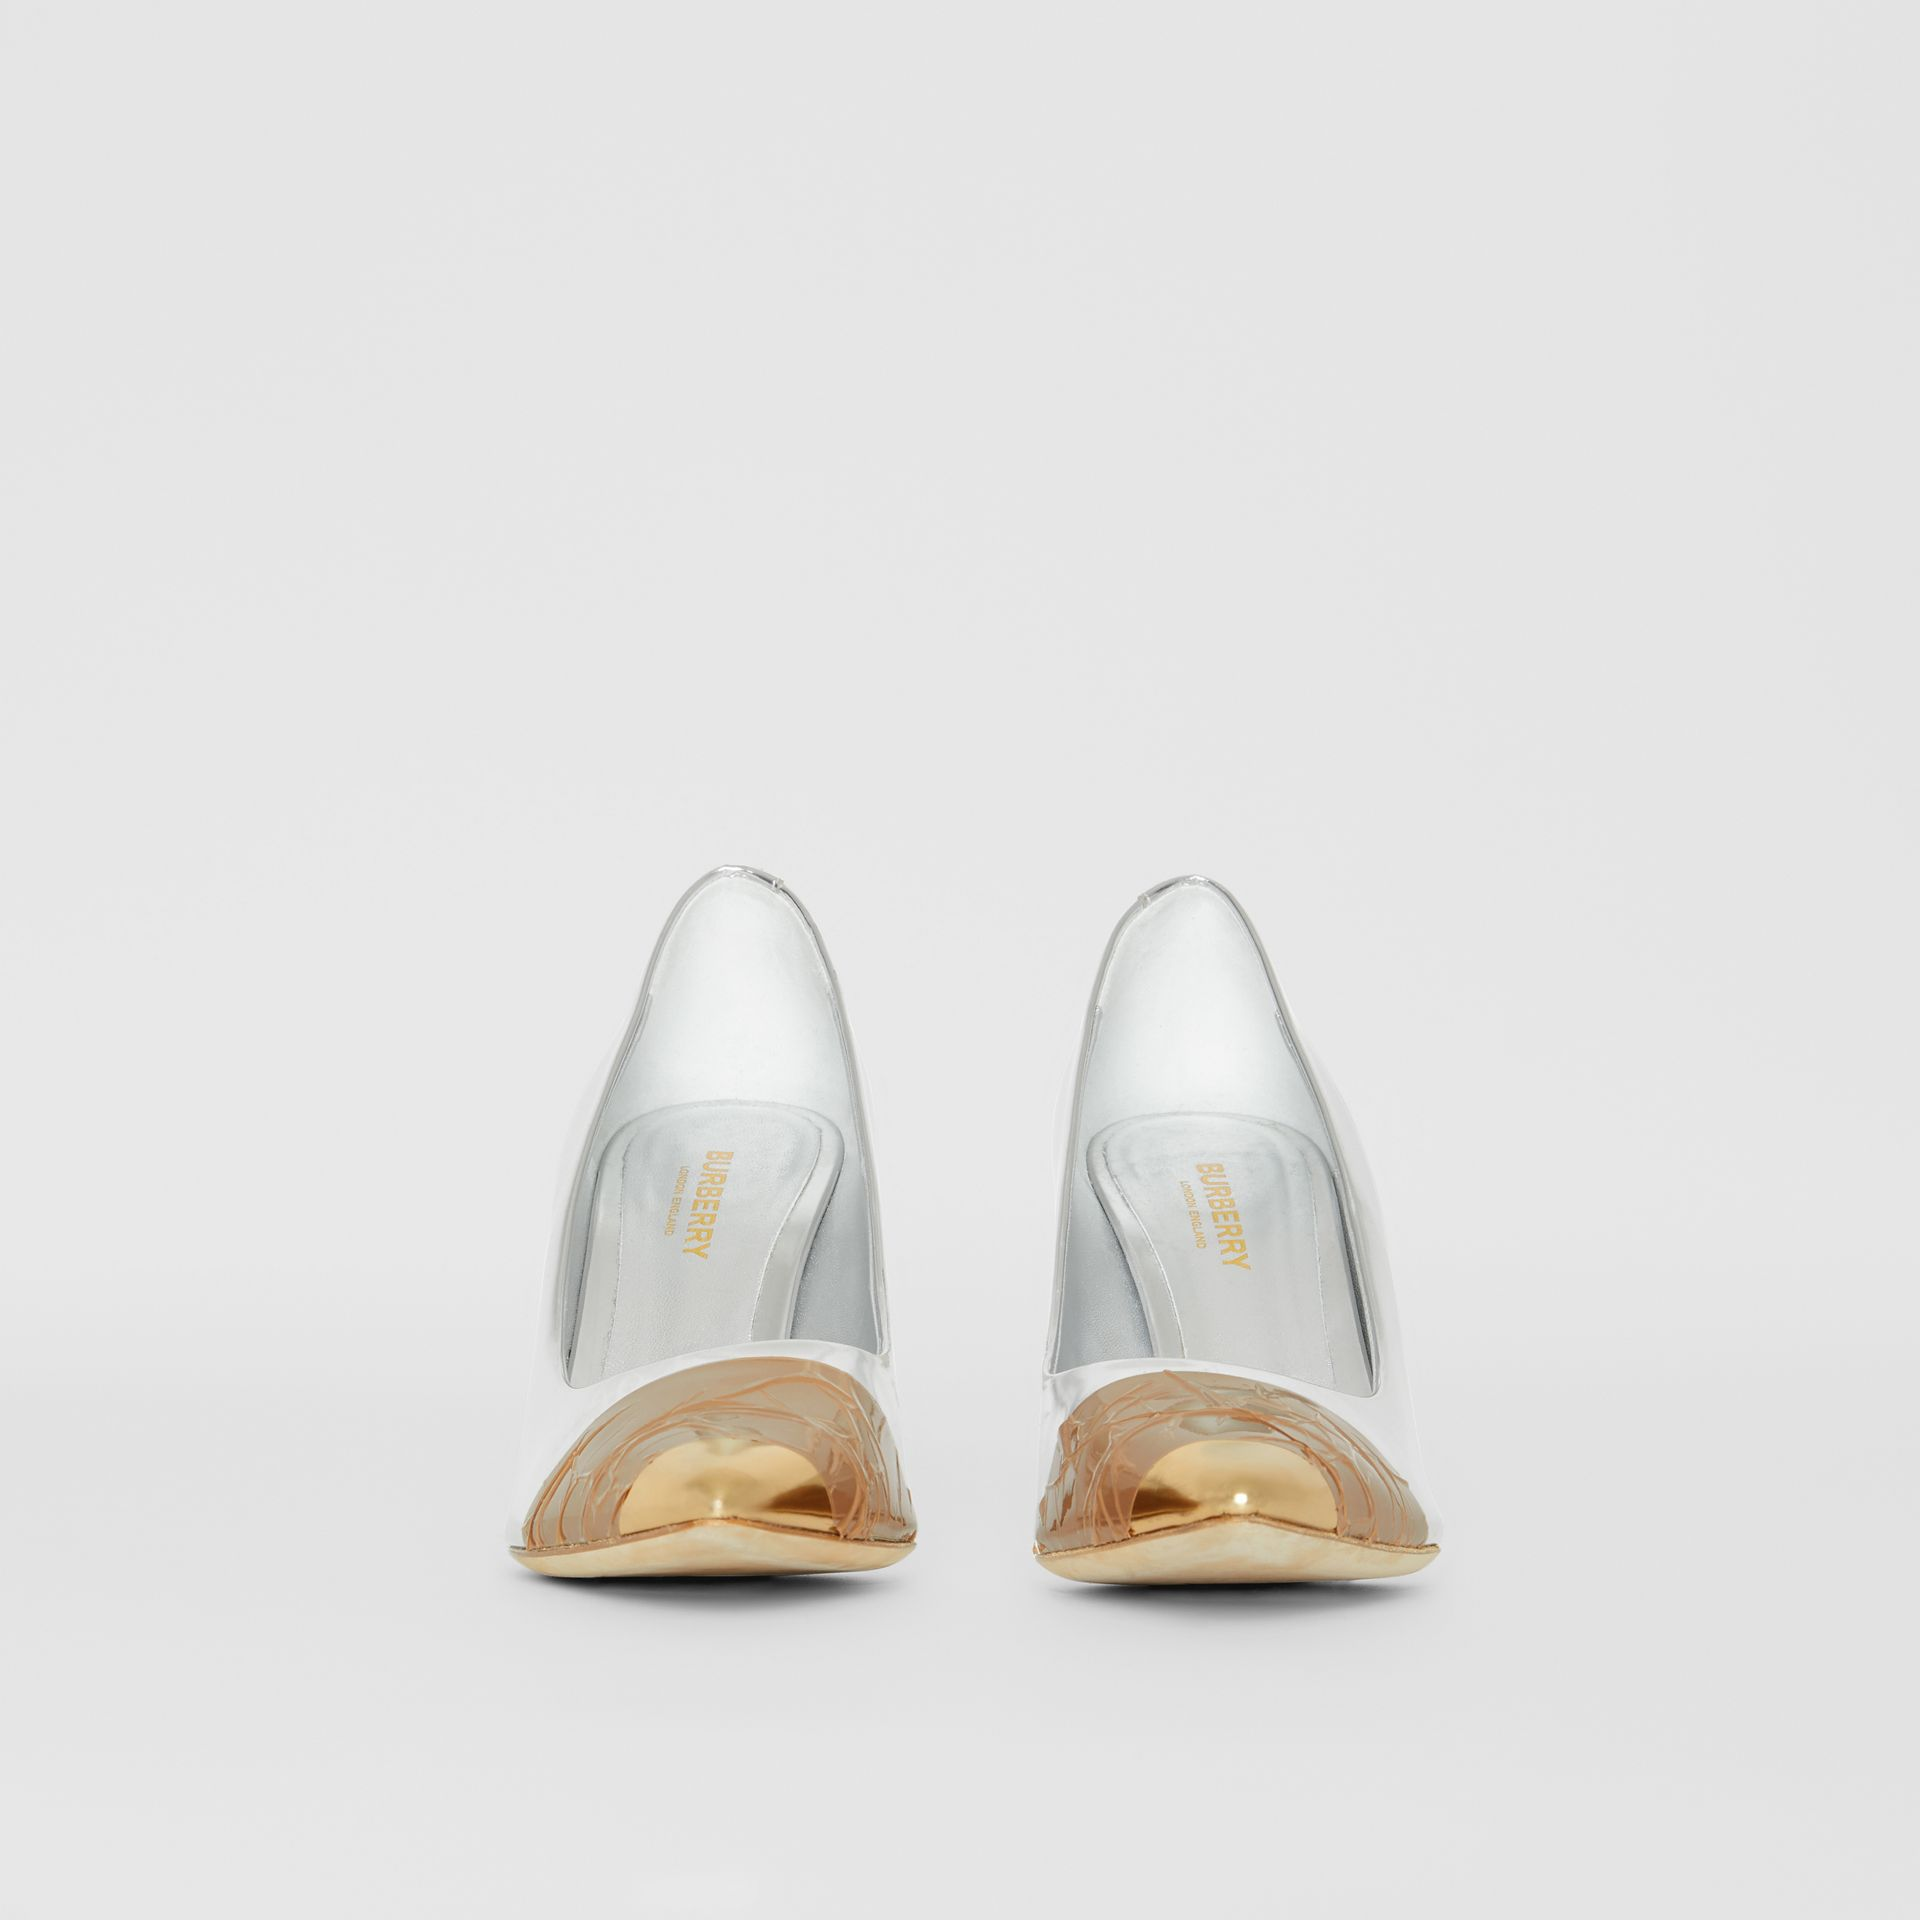 Tape Detail Mirrored Leather Pumps in Silver/gold - Women | Burberry - gallery image 3